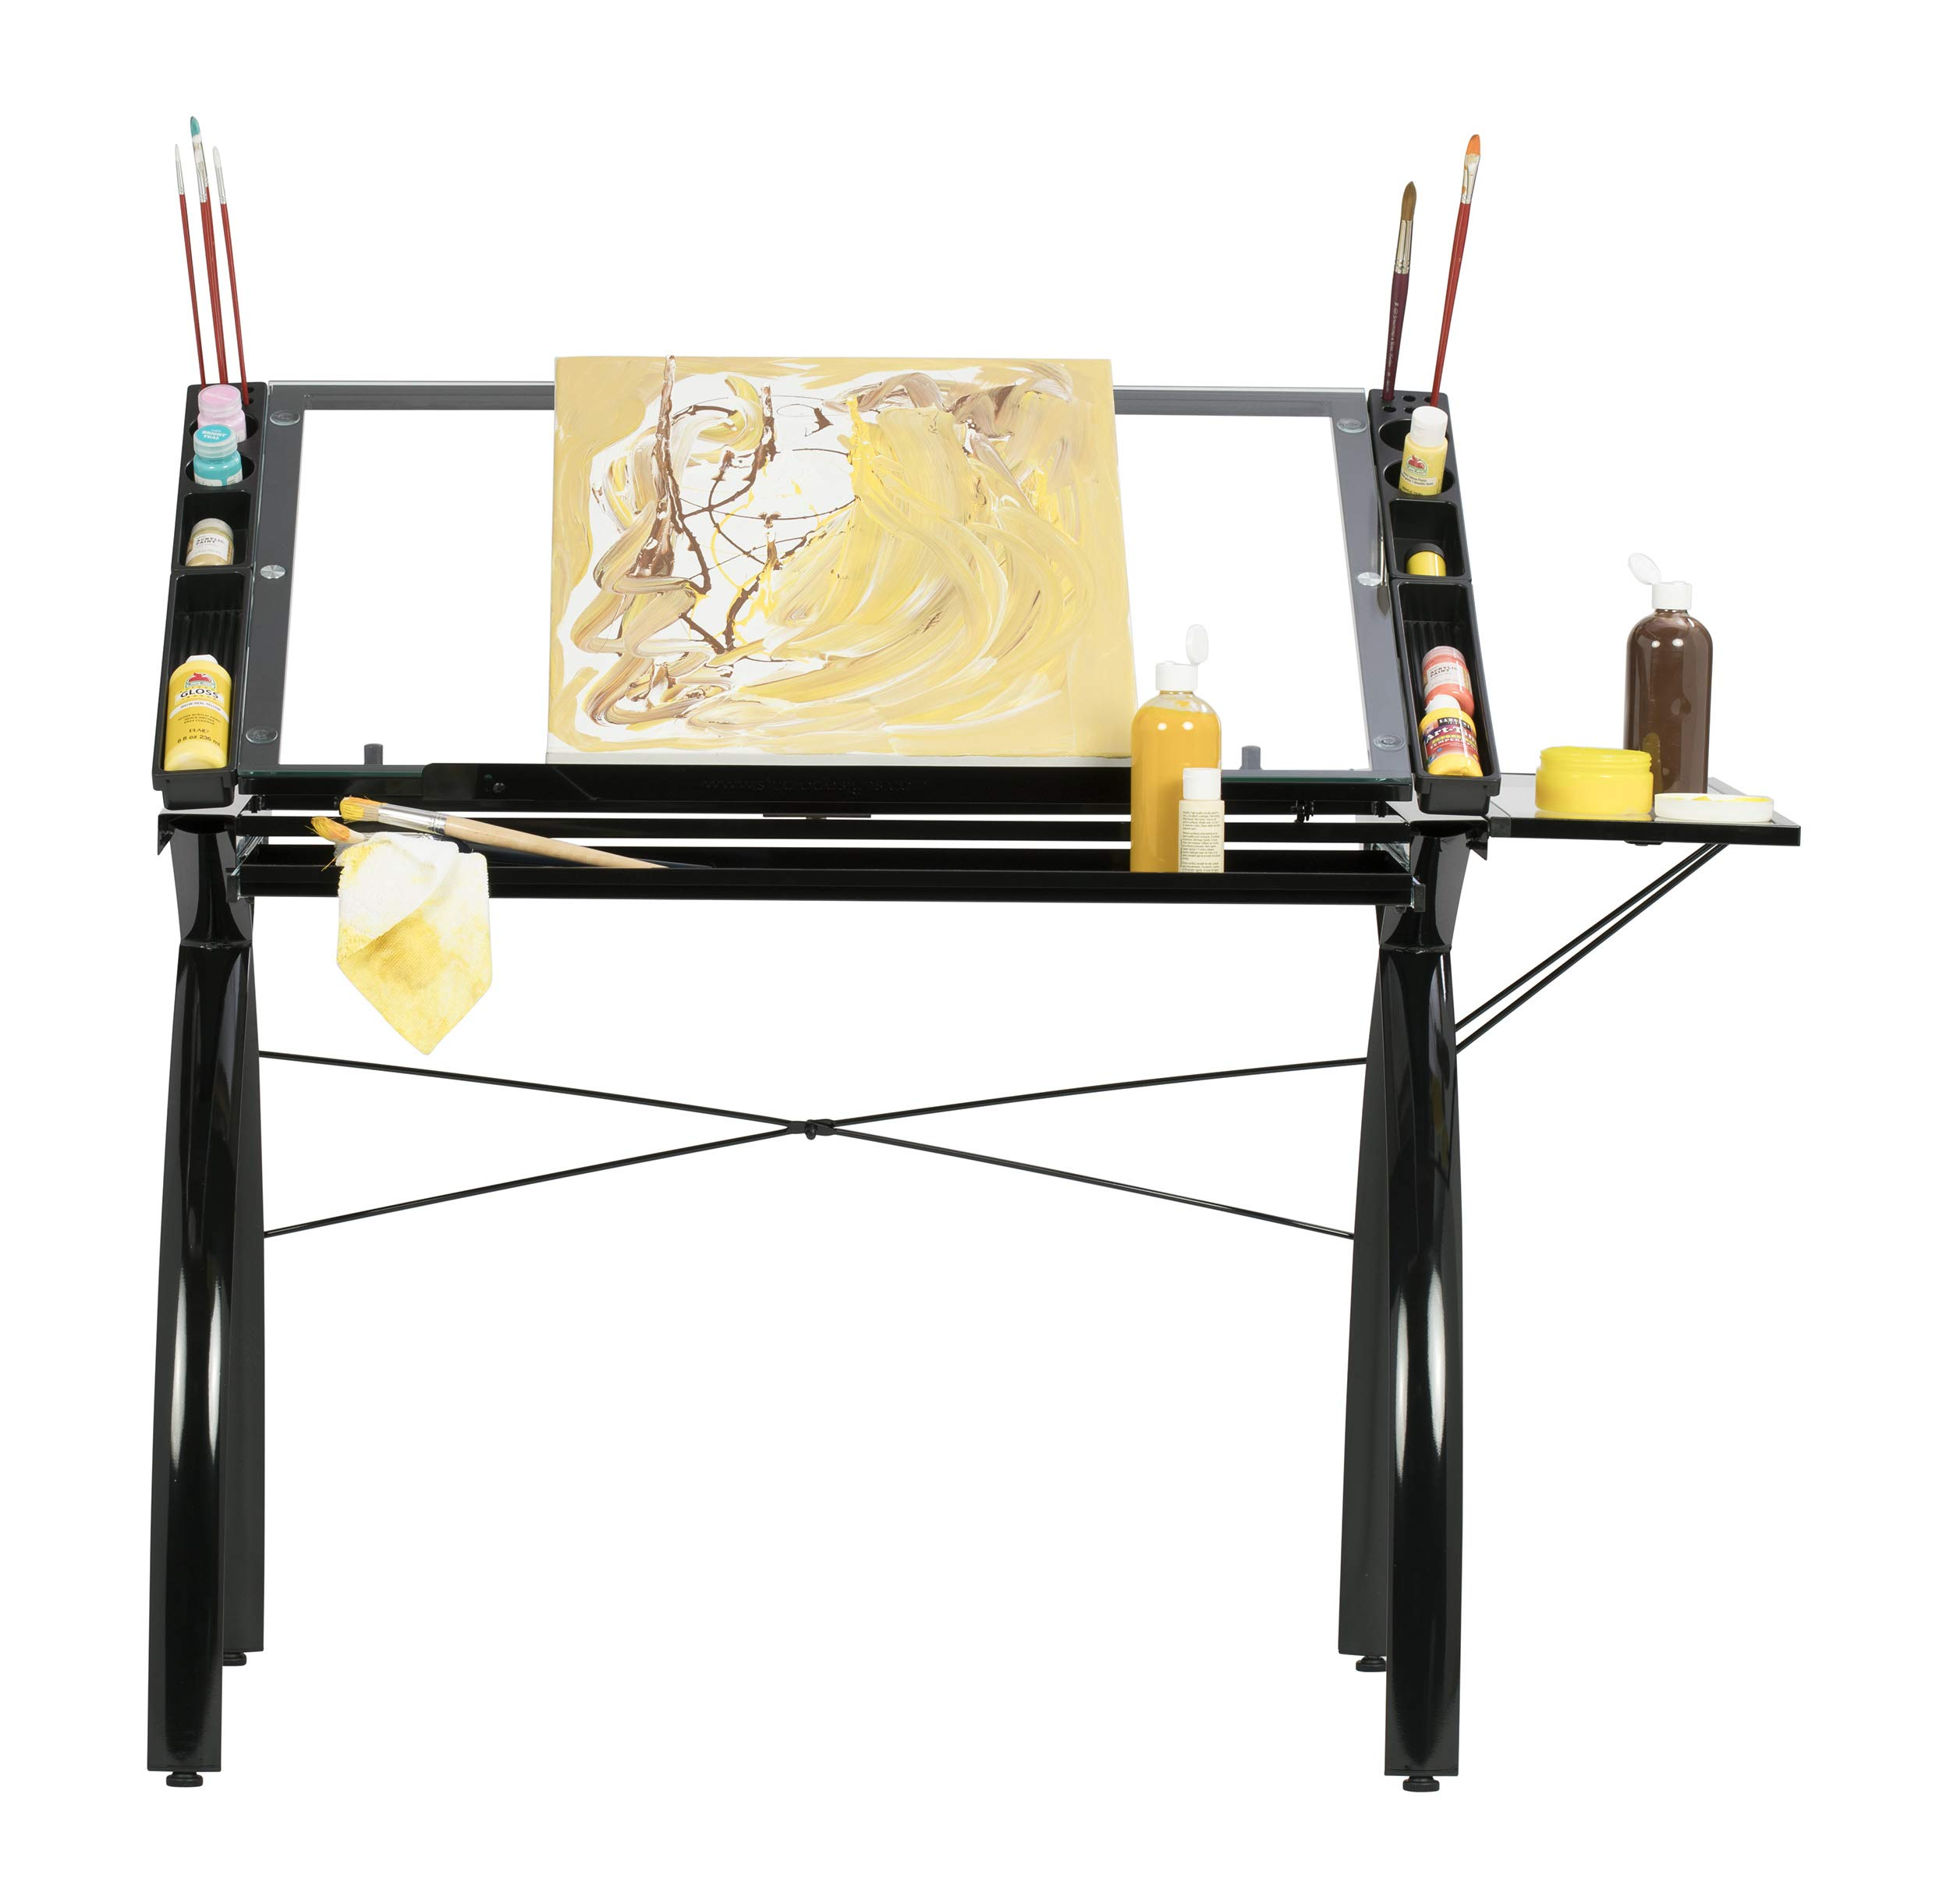 SD Studio Designs 10097 Futura Station with Folding Shelf Top Adjustable Drafting Craft Drawing Hobby Table Writing Studio Desk with Drawer, 35.5'' W x 23.75'' D, Black/Clear Glass